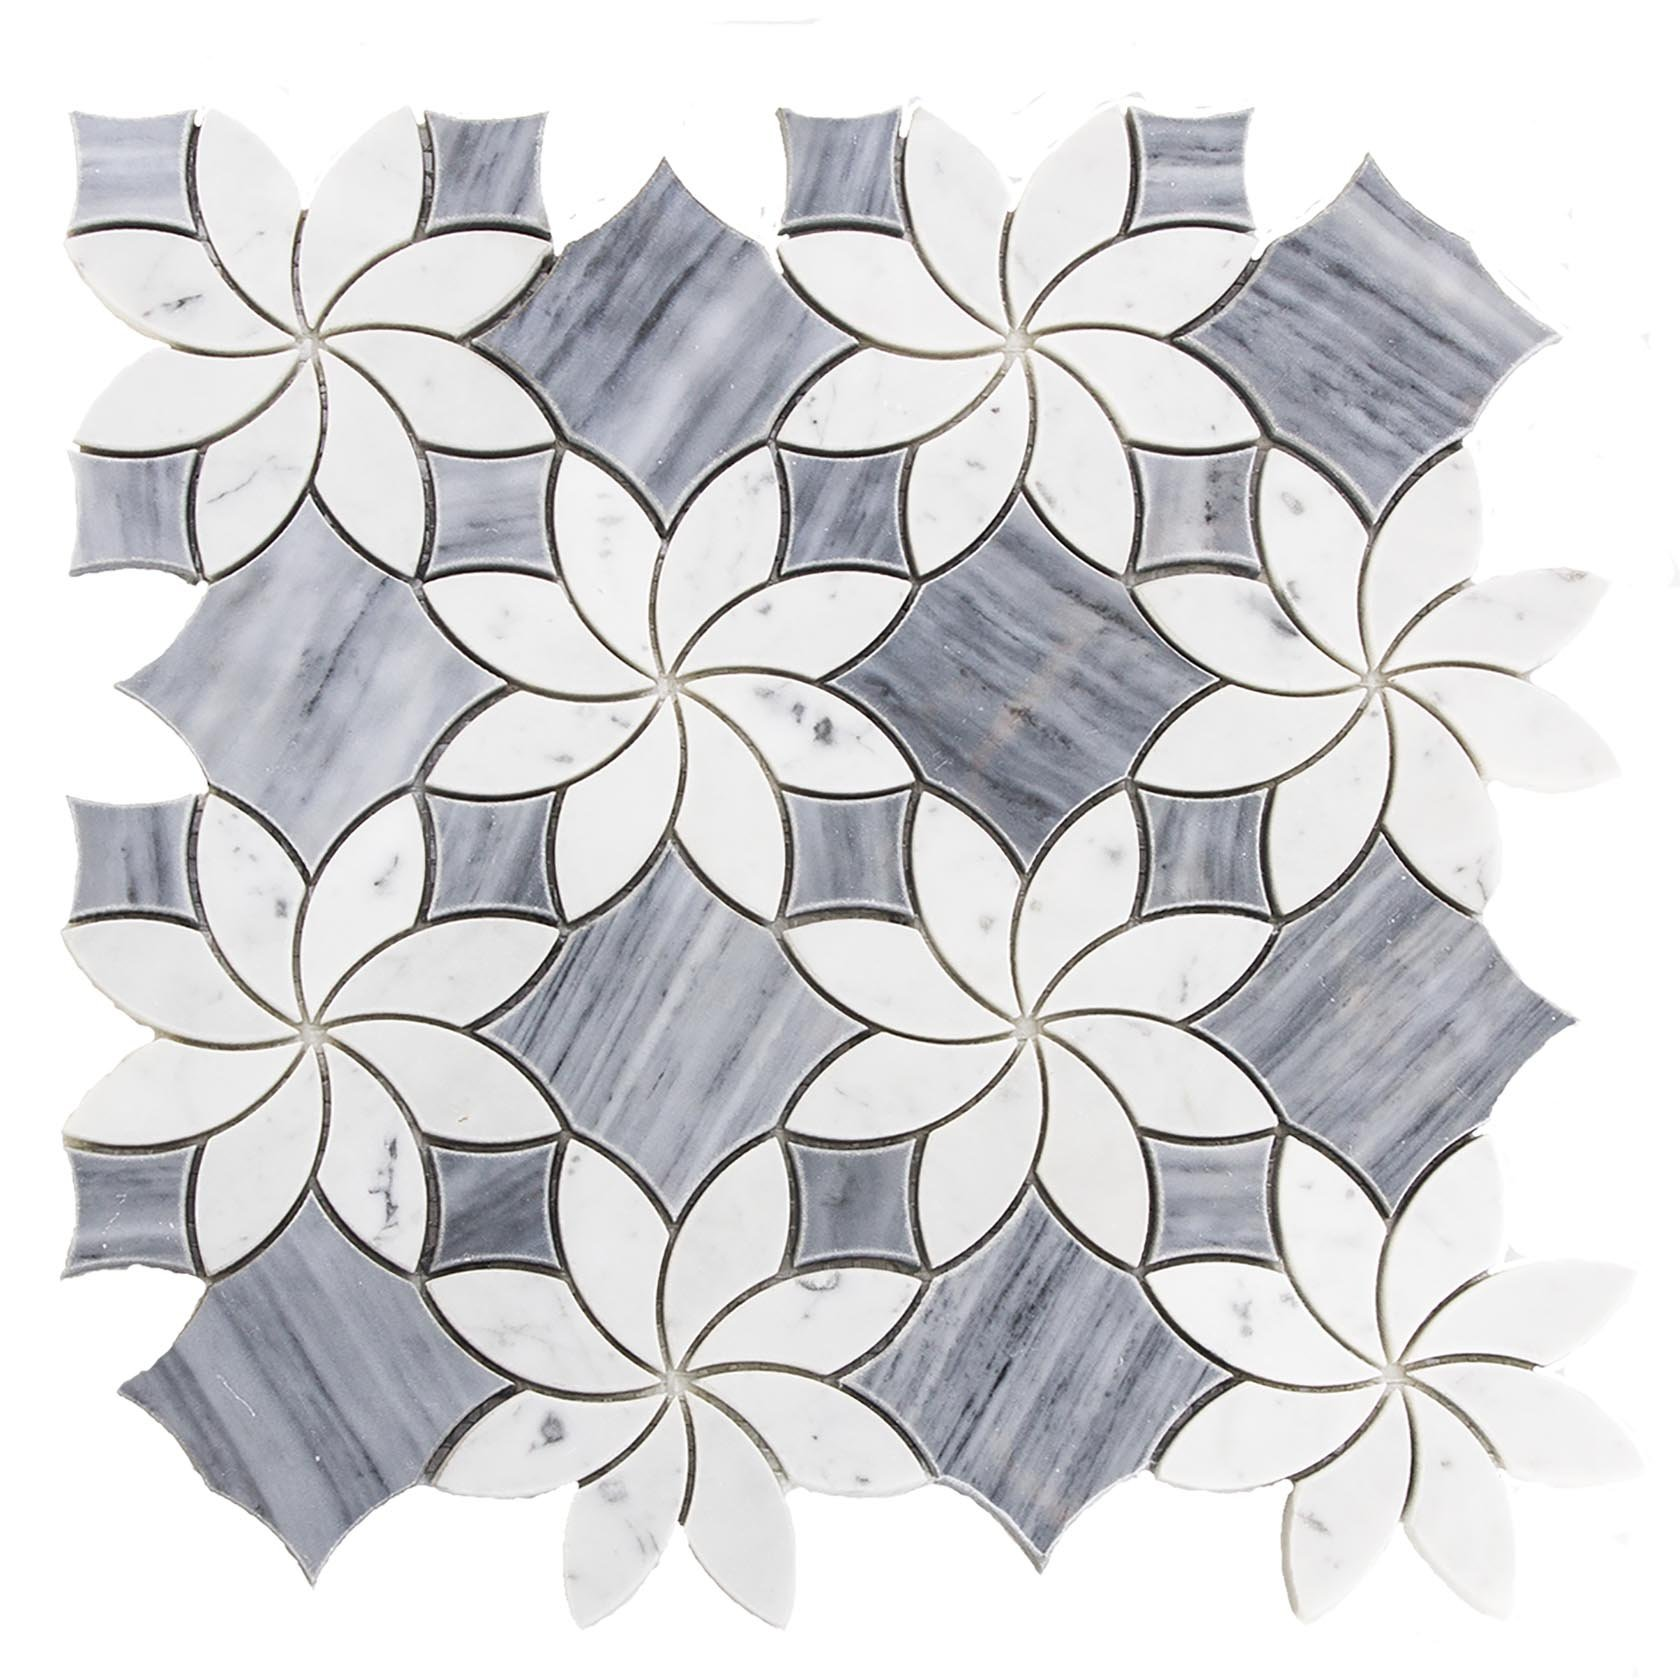 Waterjet Design Marble Mosaic Tile, WJM 1001 - Blossom, 11-1/2''X11-1/2'', Polished (Single Seet) by Waterjet Design Marble Mosaic Tile